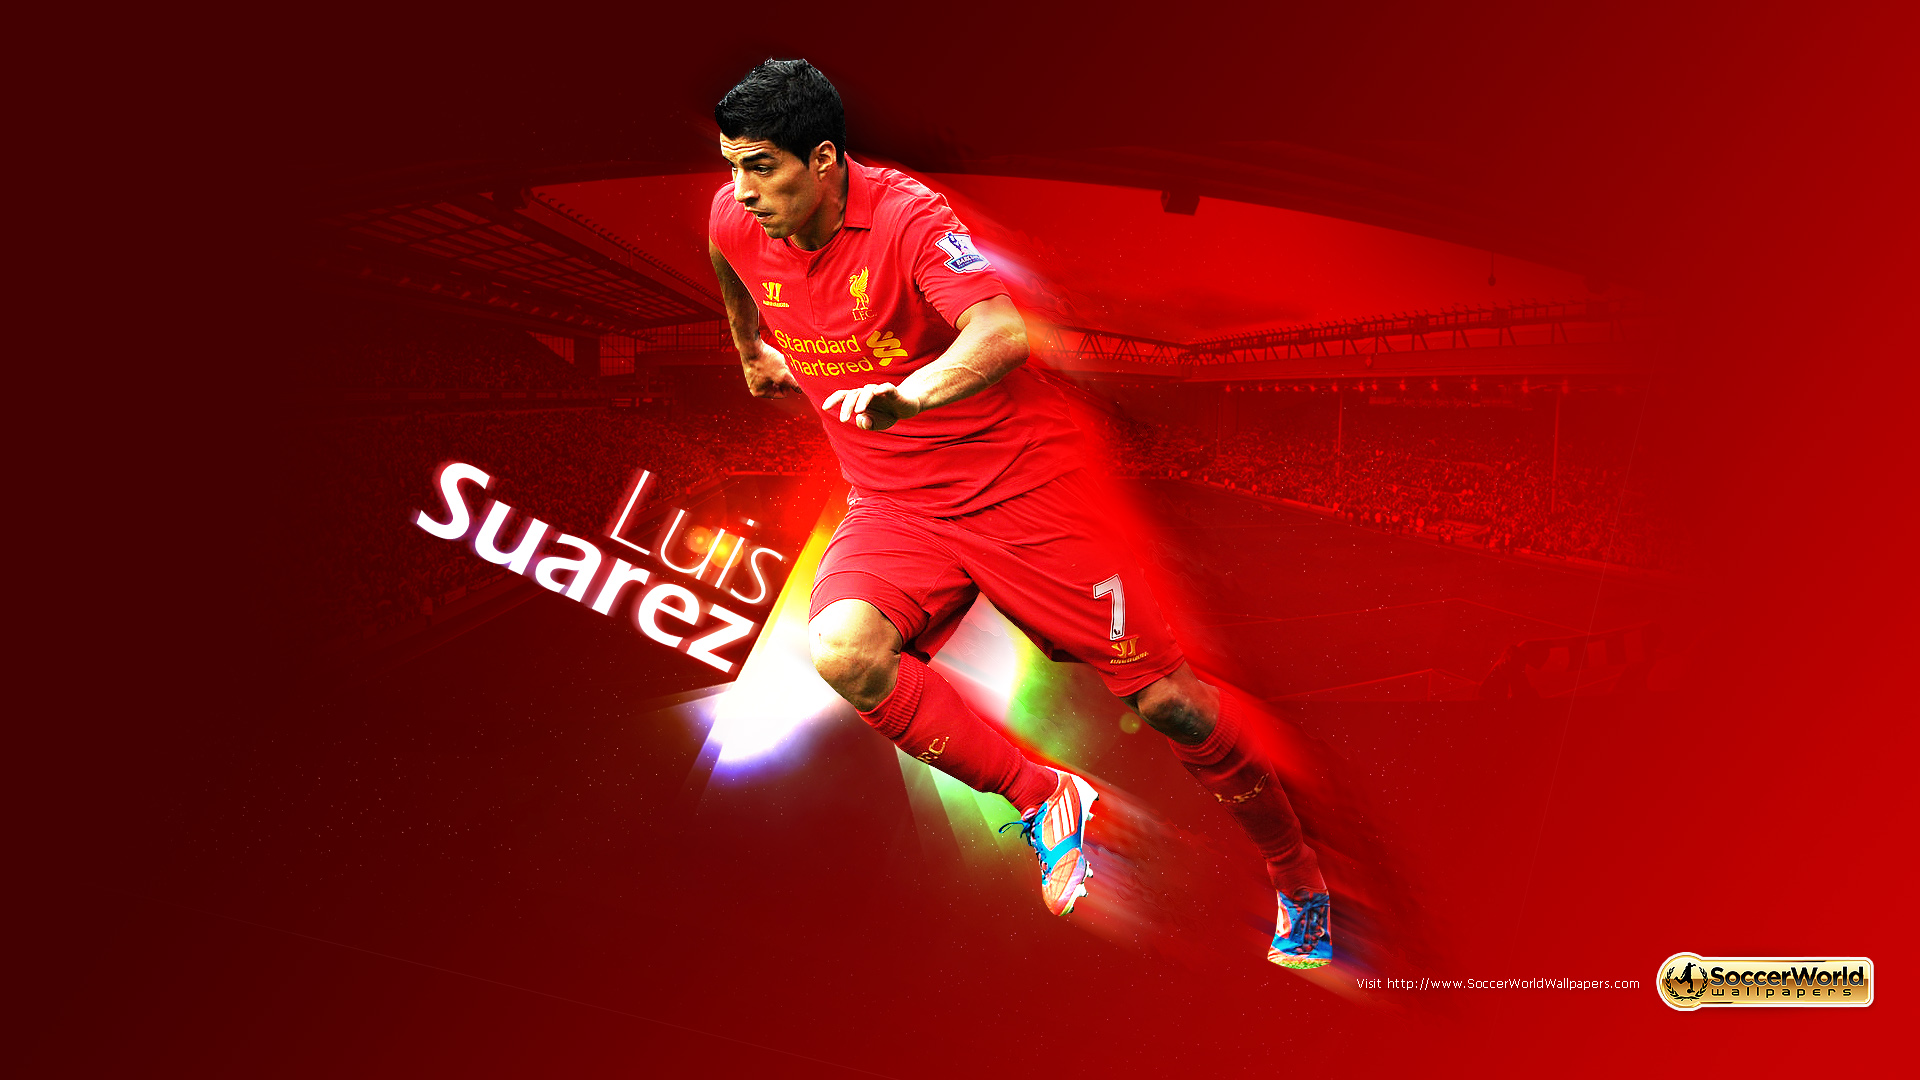 Luis Suarez Wallpapers High Resolution and Quality Download 1920x1080